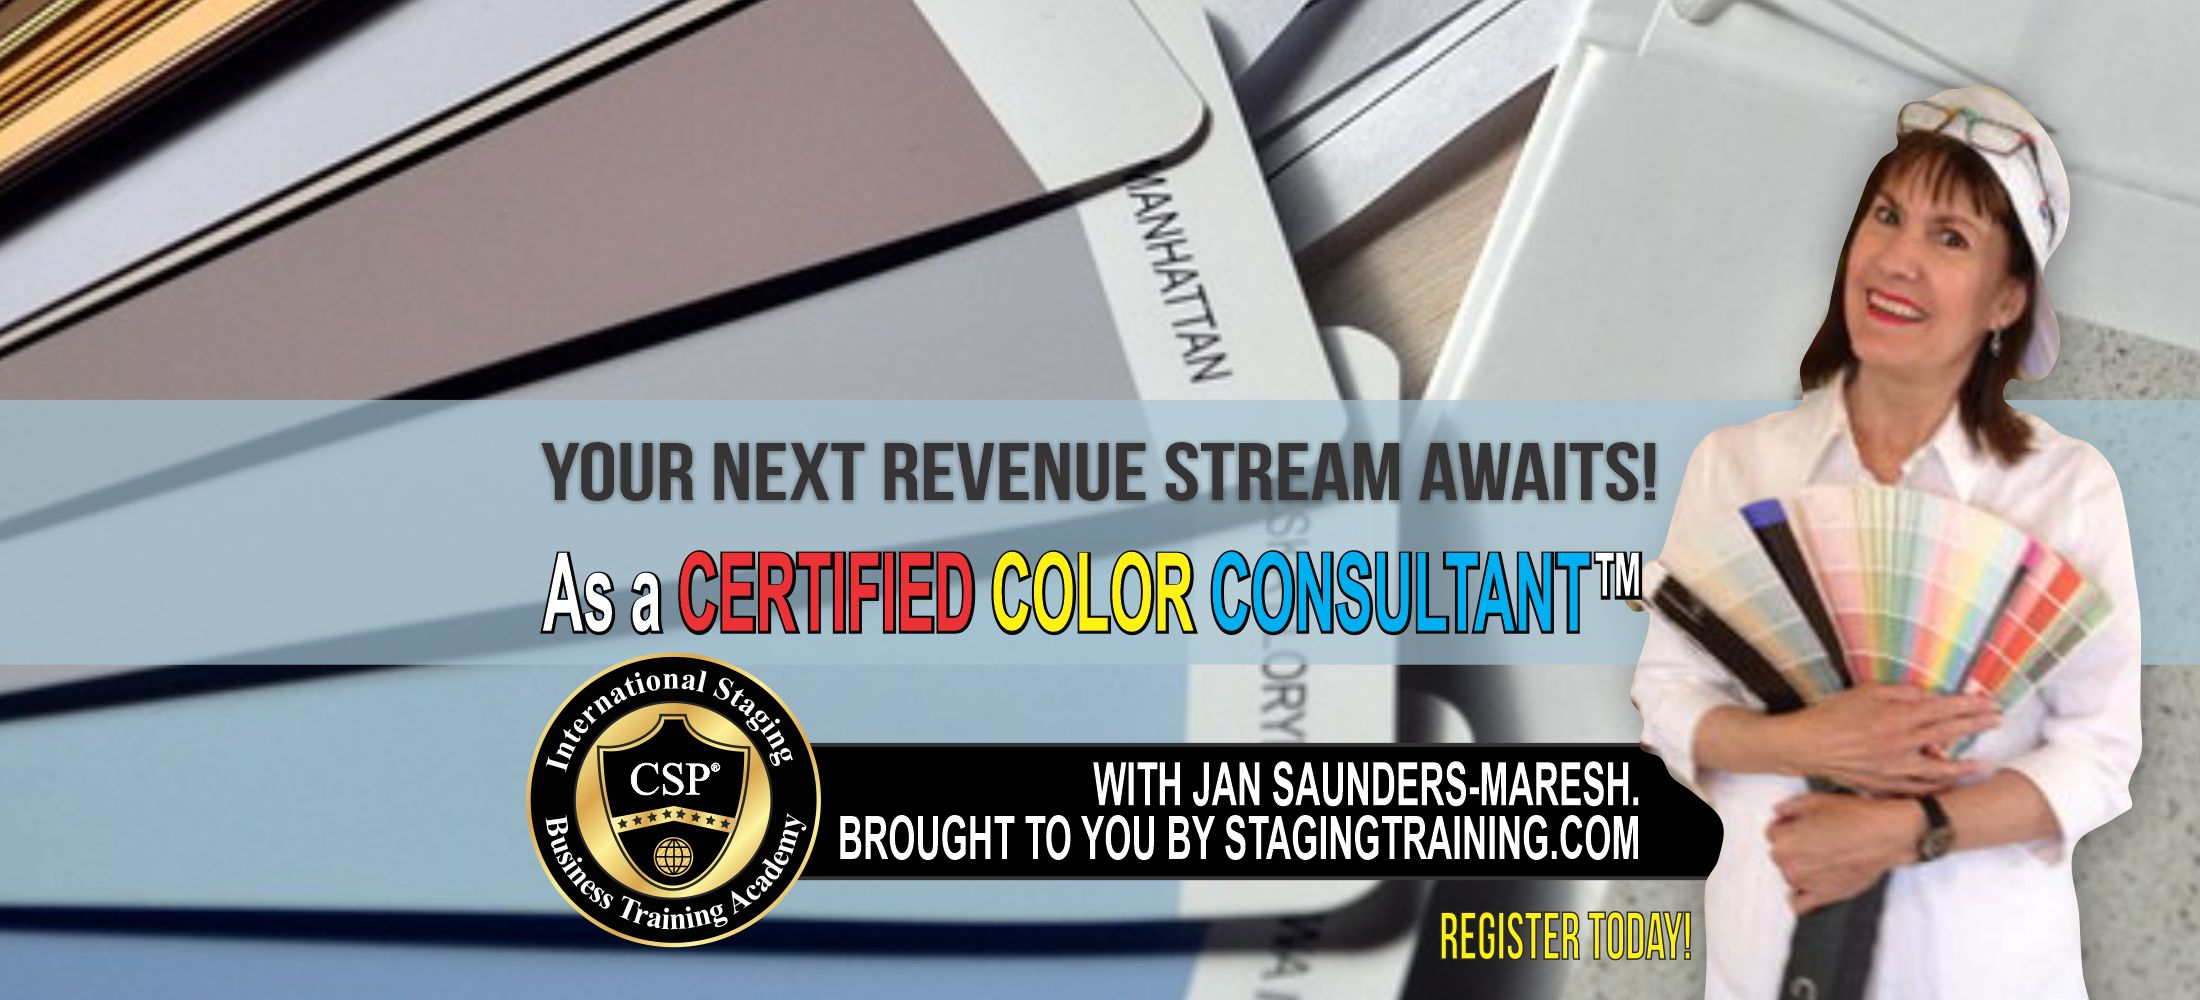 certified color consultant course